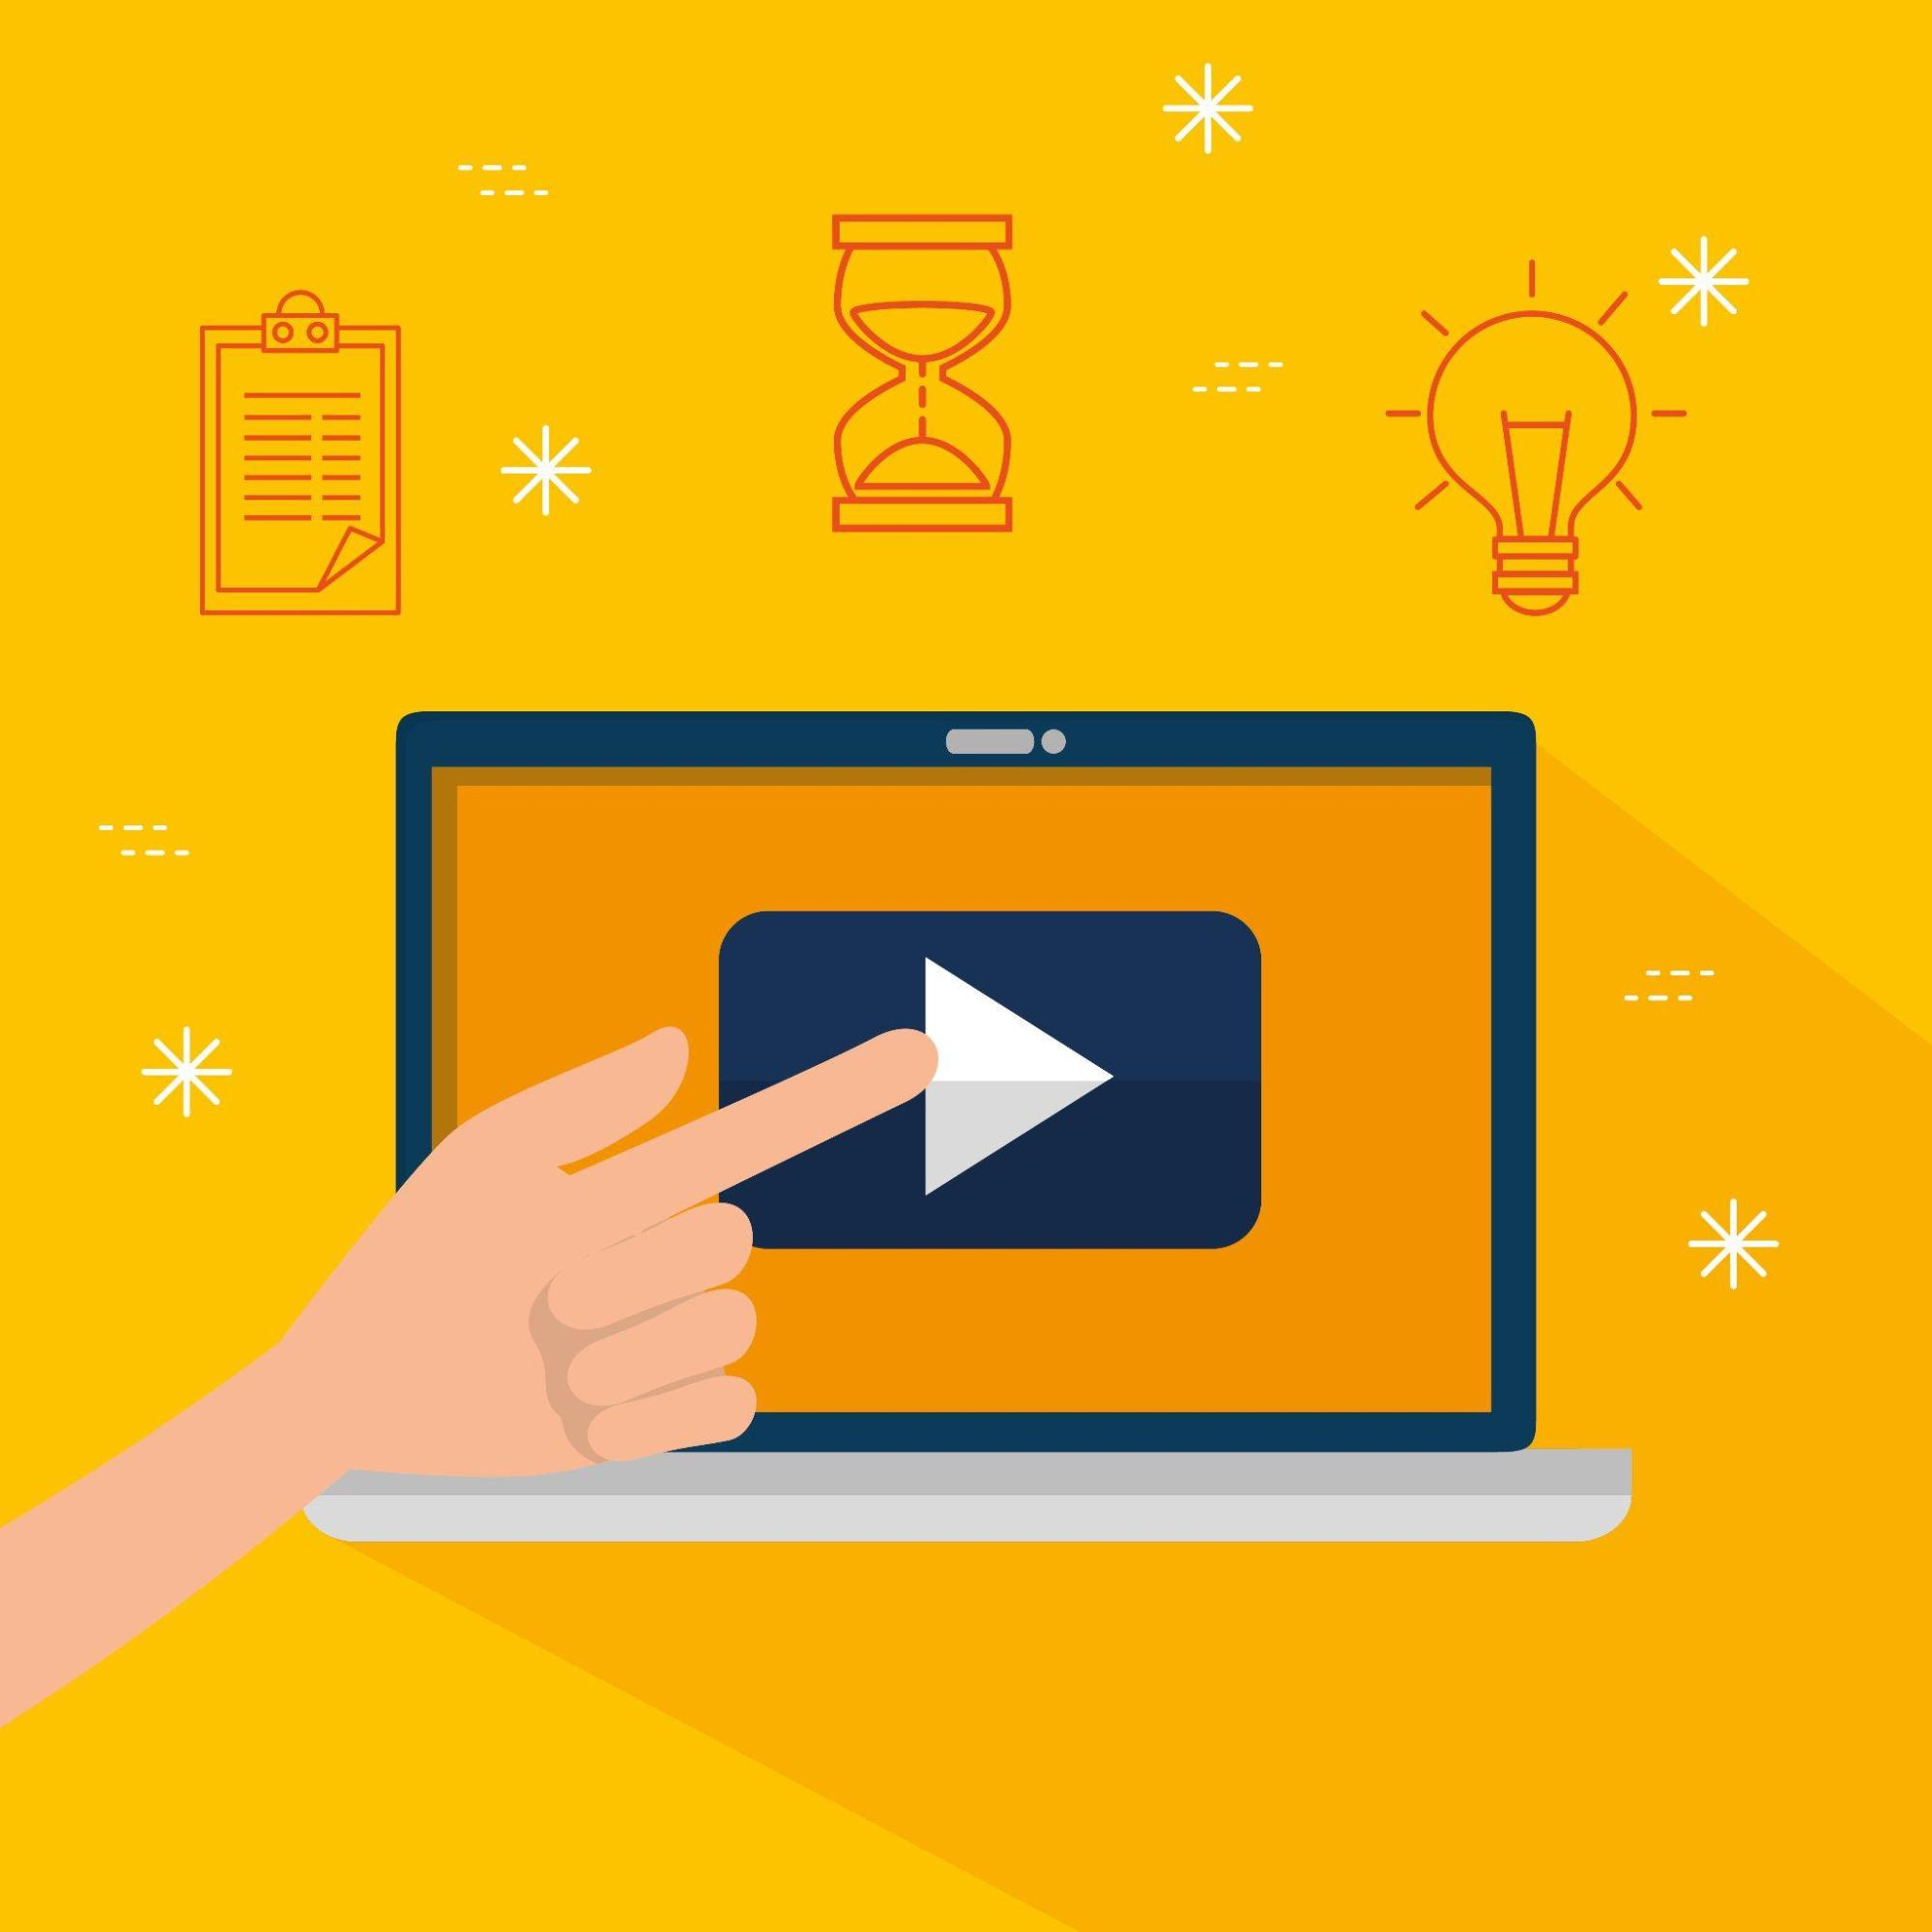 image1 1 - 5 Tips for Creating Great Marketing Videos